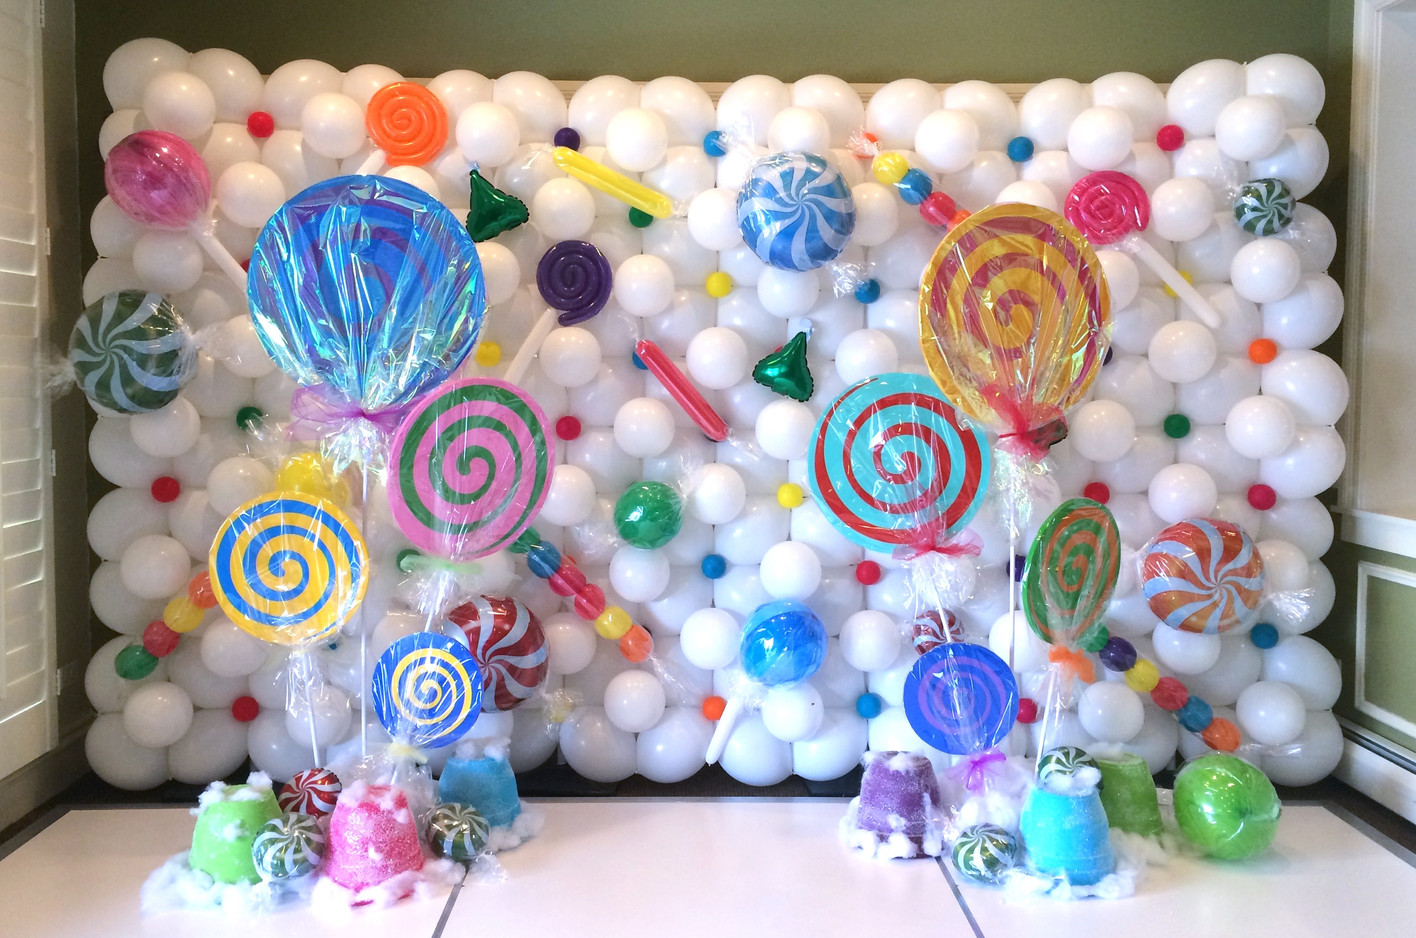 7.5' x 12' Candy Land Balloon Wall